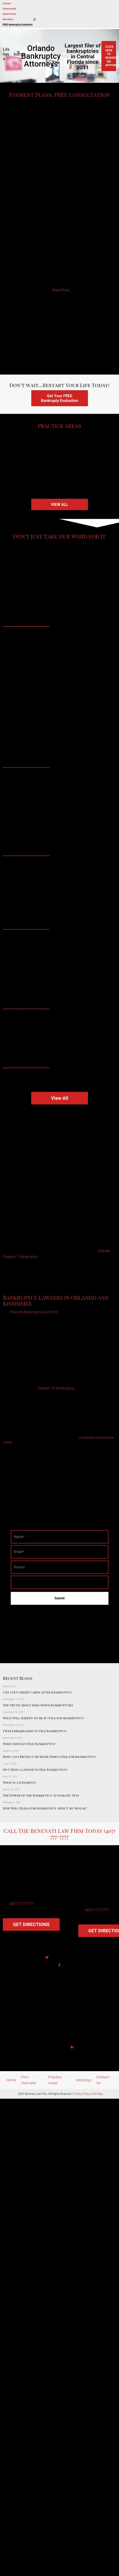 Law Office of Walter F. Benenati Credit Attorney PA - Orlando FL Lawyers